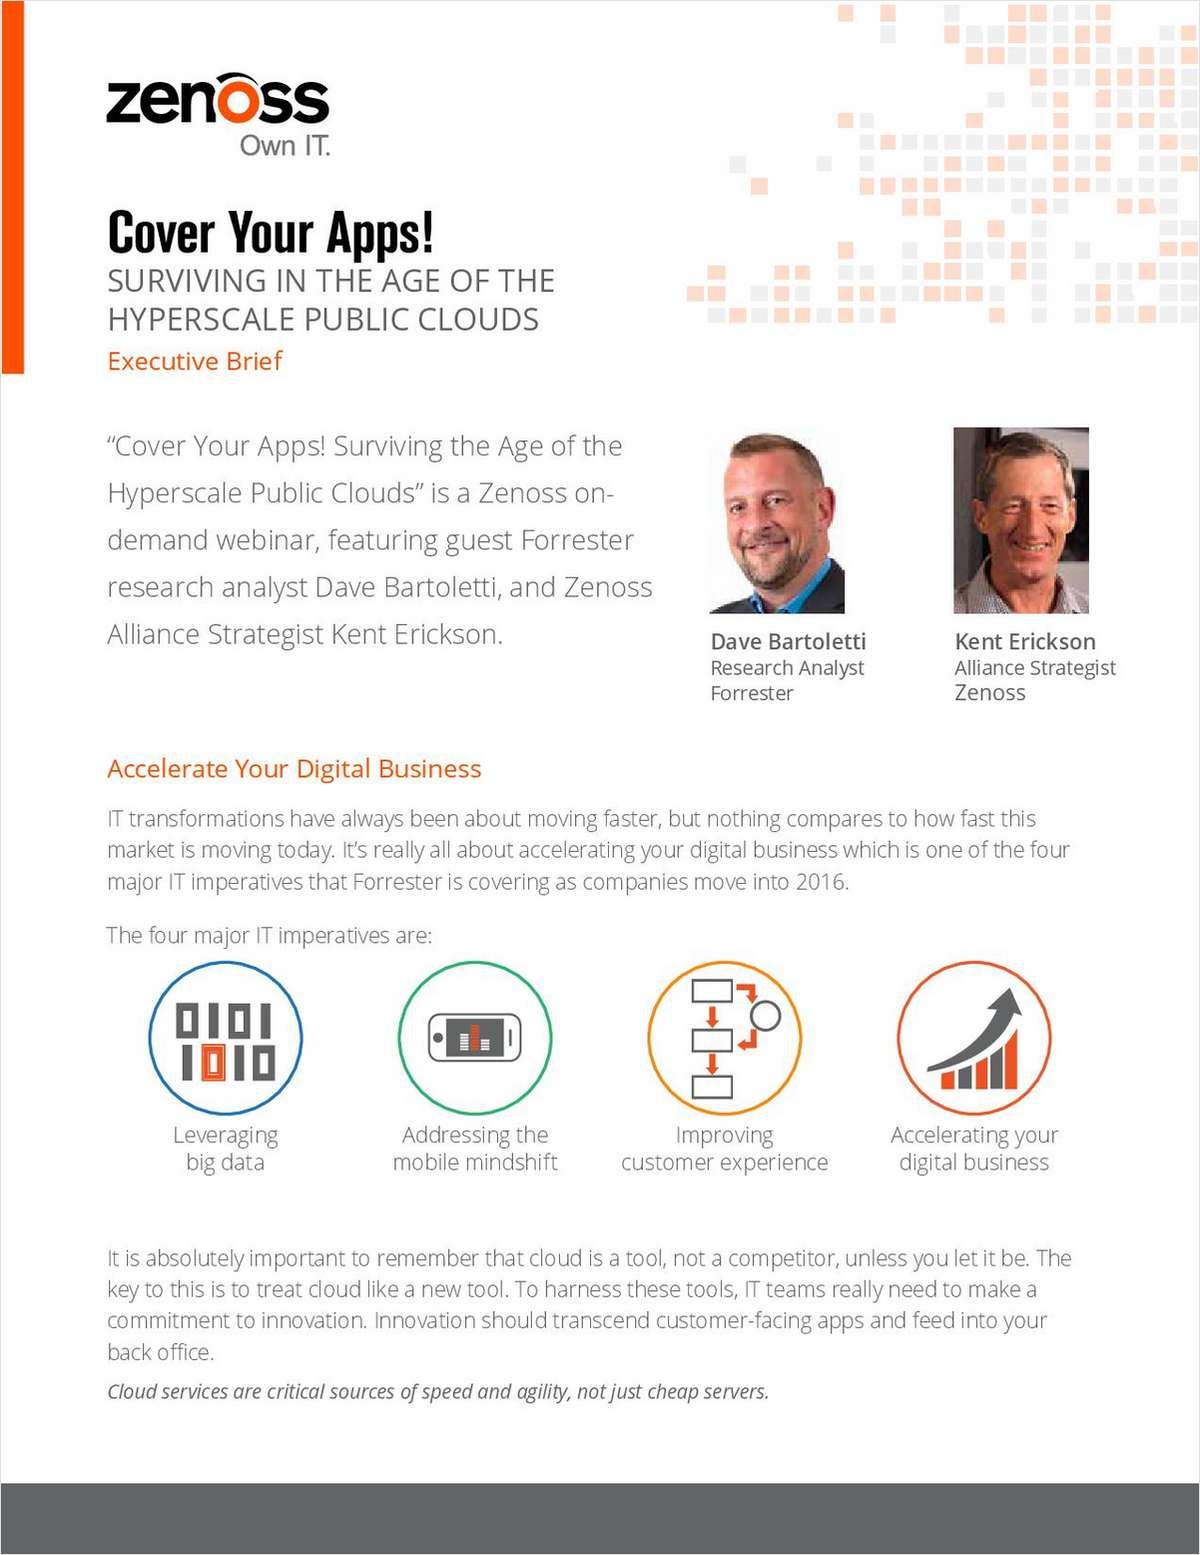 Cover Your Apps! Surviving in the Age of the Hyperscale Public Clouds